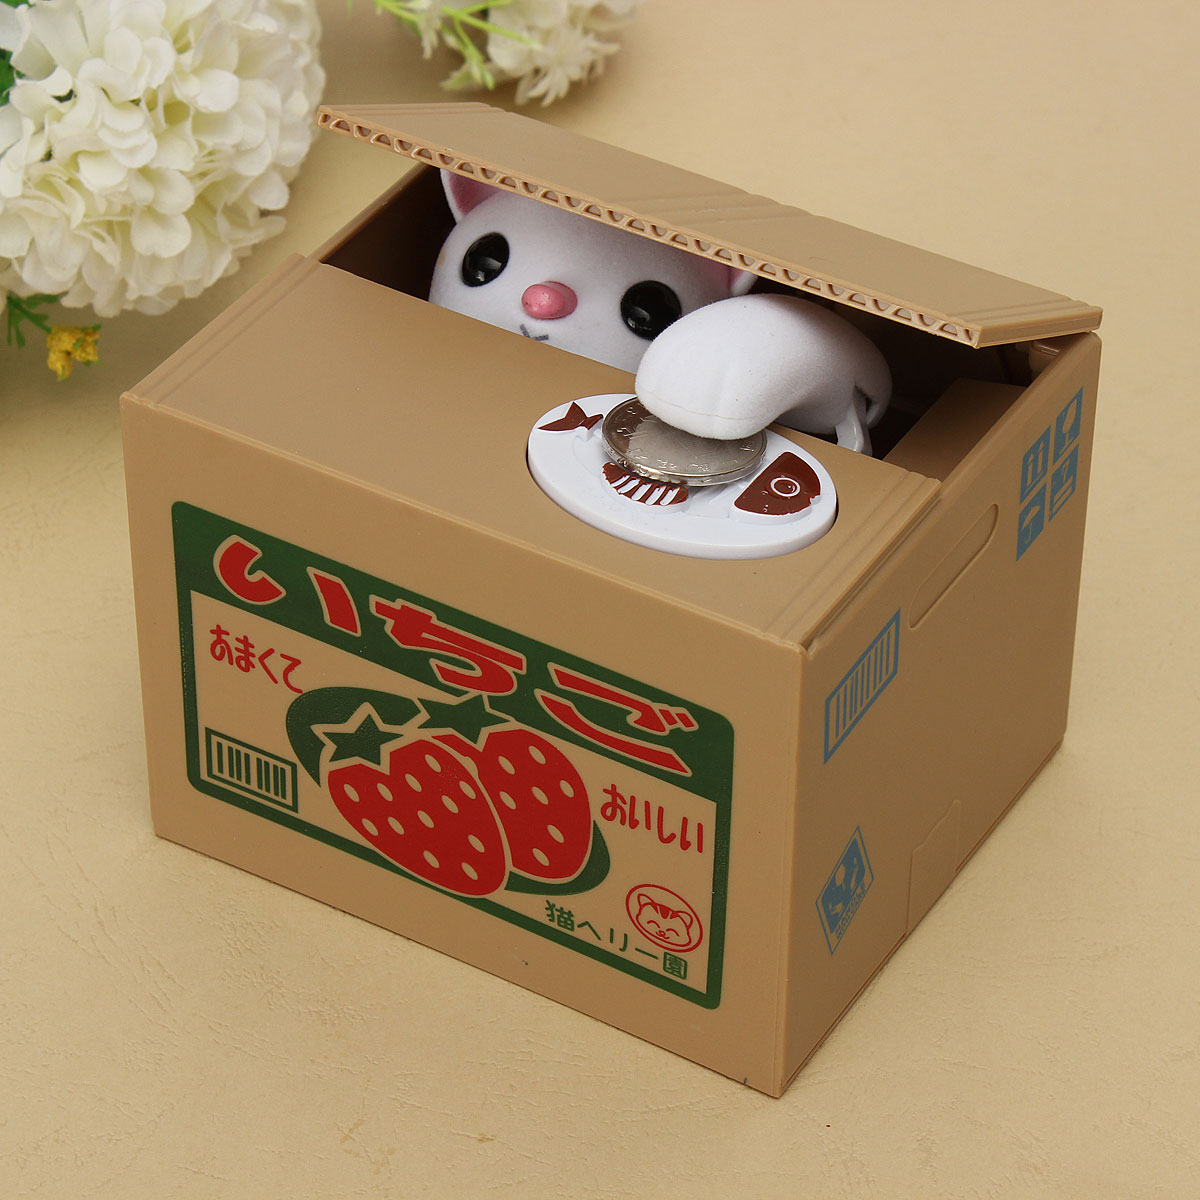 Creative novelty cat steal coin money saving box piggy bank pot case kids gift ebay - Coin stealing cat piggy bank ...